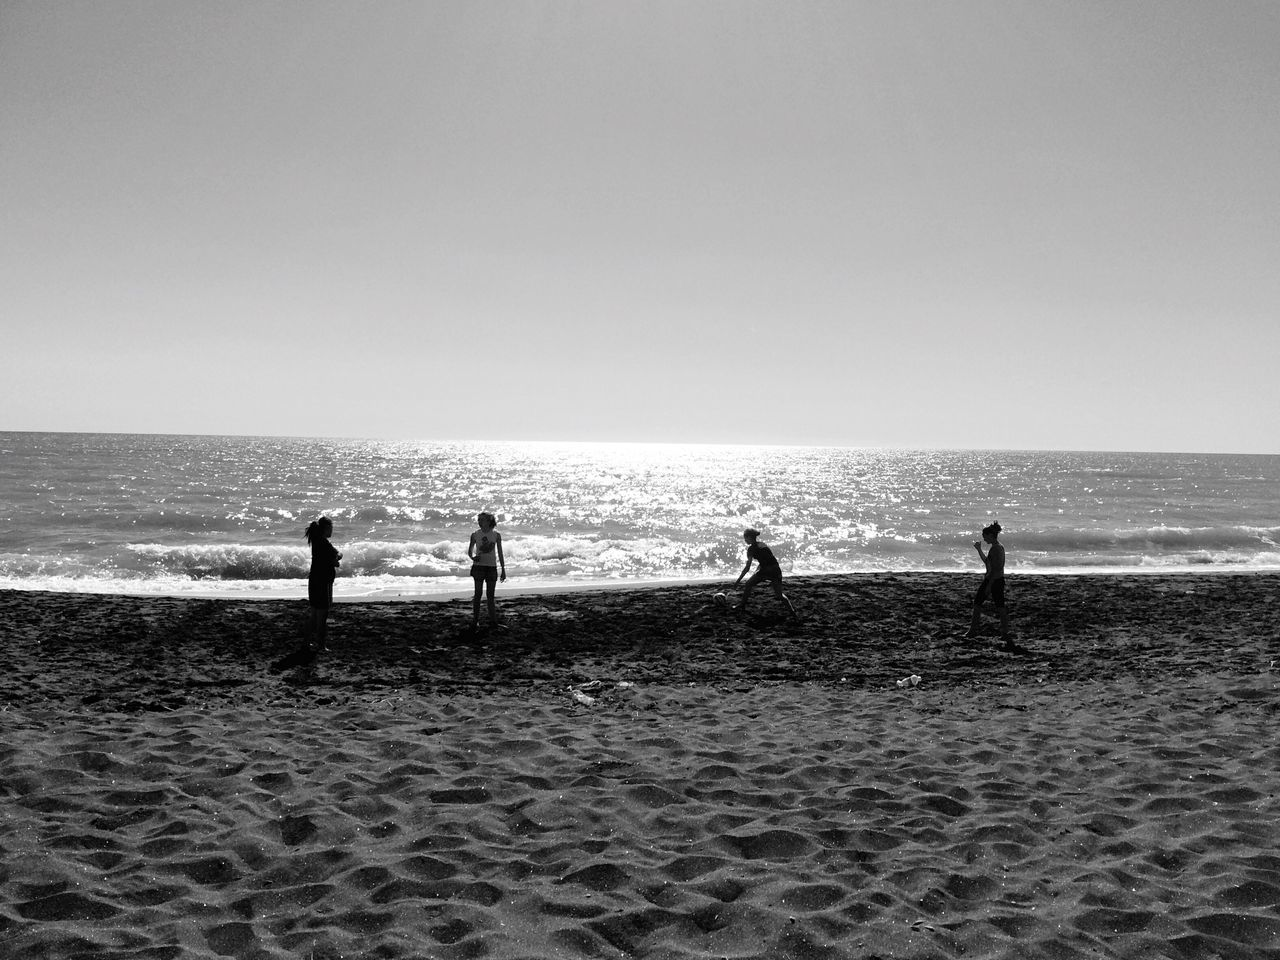 sea, beach, horizon over water, shore, sand, water, nature, wave, real people, beauty in nature, scenics, sky, vacations, standing, leisure activity, men, outdoors, clear sky, weekend activities, lifestyles, silhouette, day, people